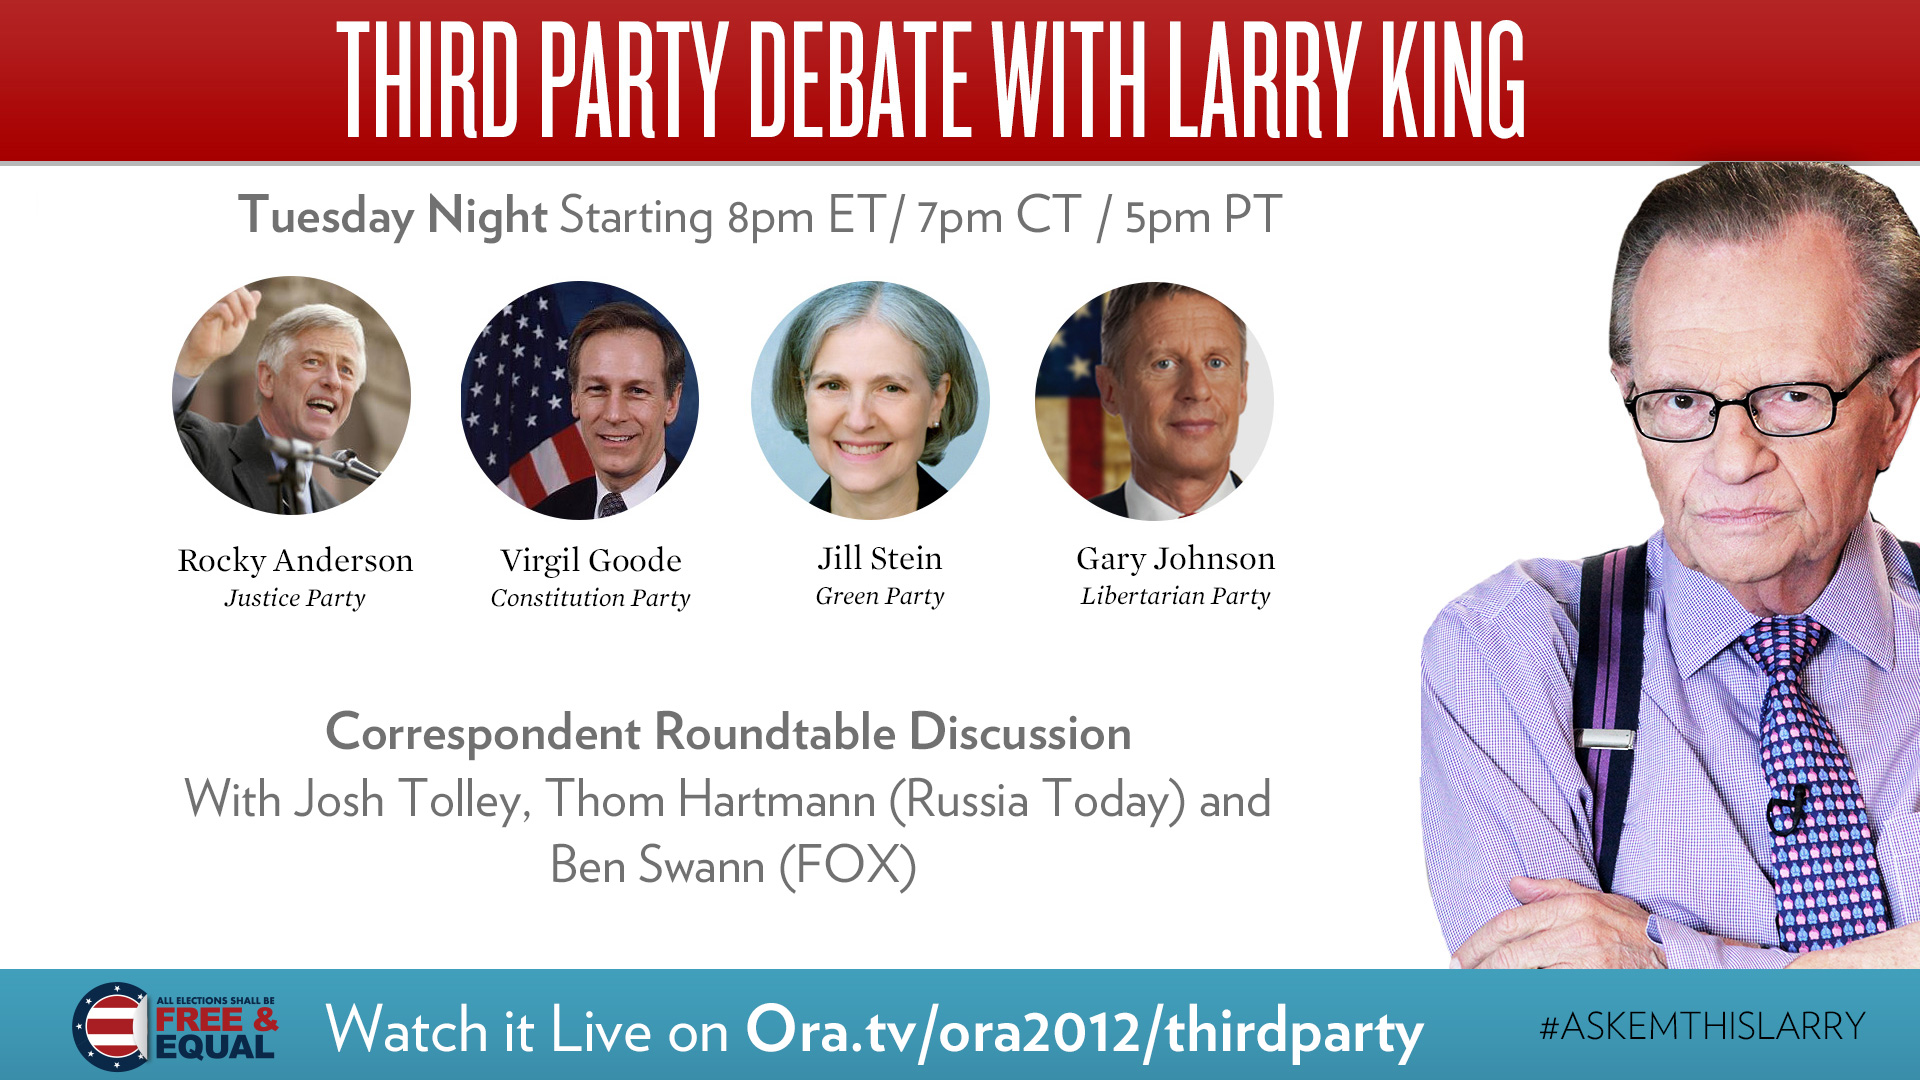 larry king hosts third party debate tonight 10 23 the green